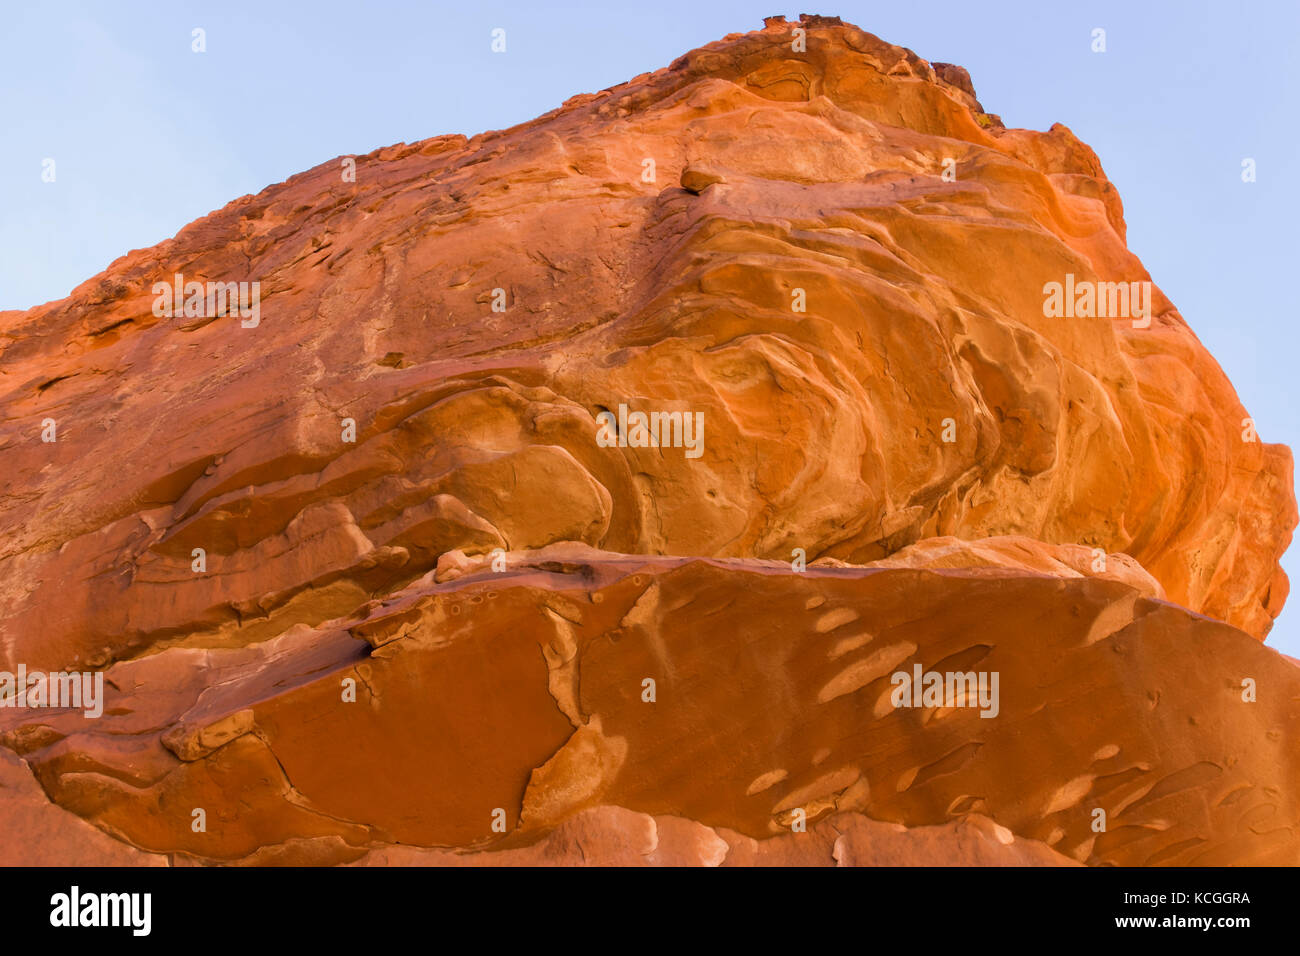 An orange colored rock formation in Nevada. - Stock Image